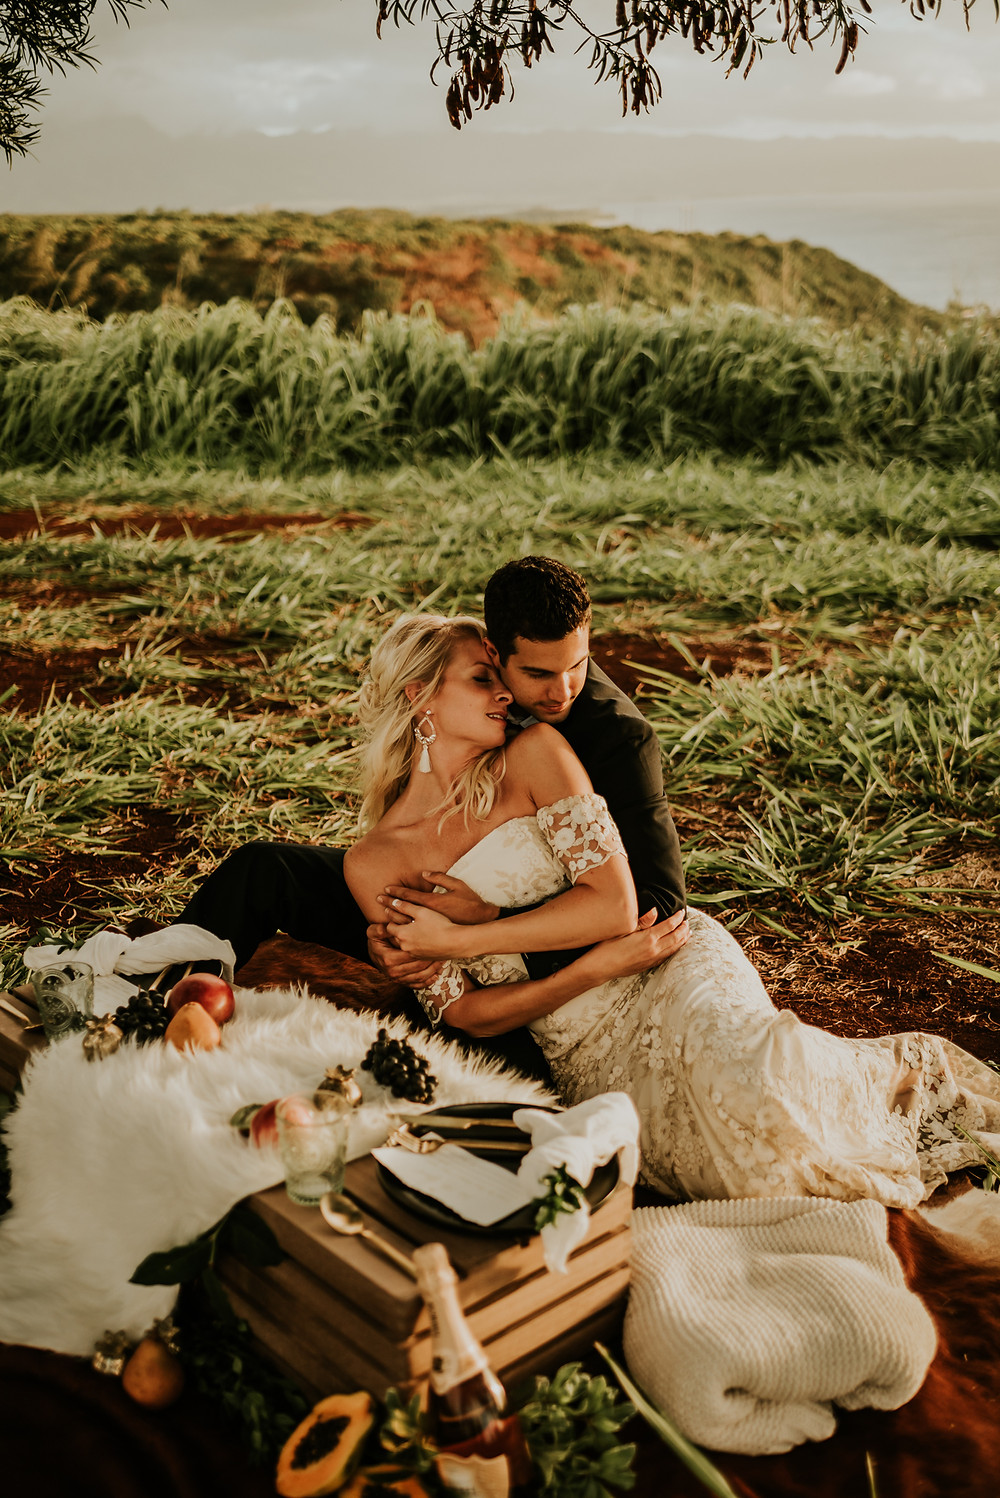 styled elopement photographer oahu hawaii